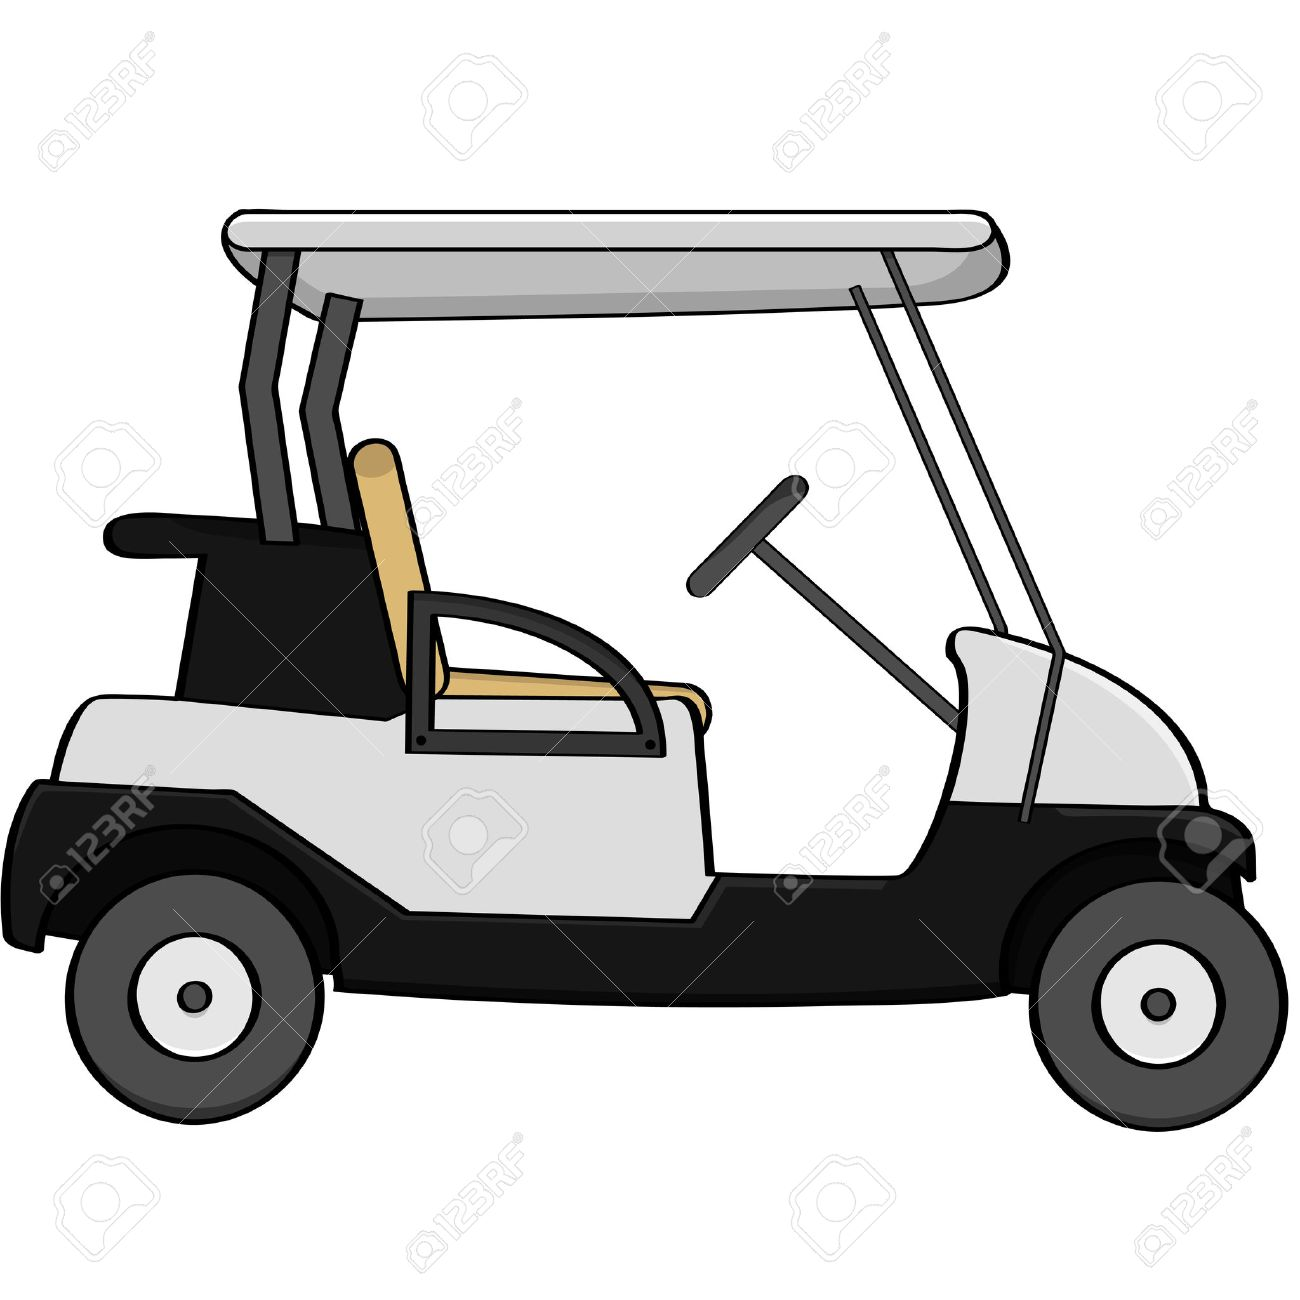 cartoon illustration of an empty golf cart royalty free cliparts rh 123rf com golf cart clipart pink golf cart clipart